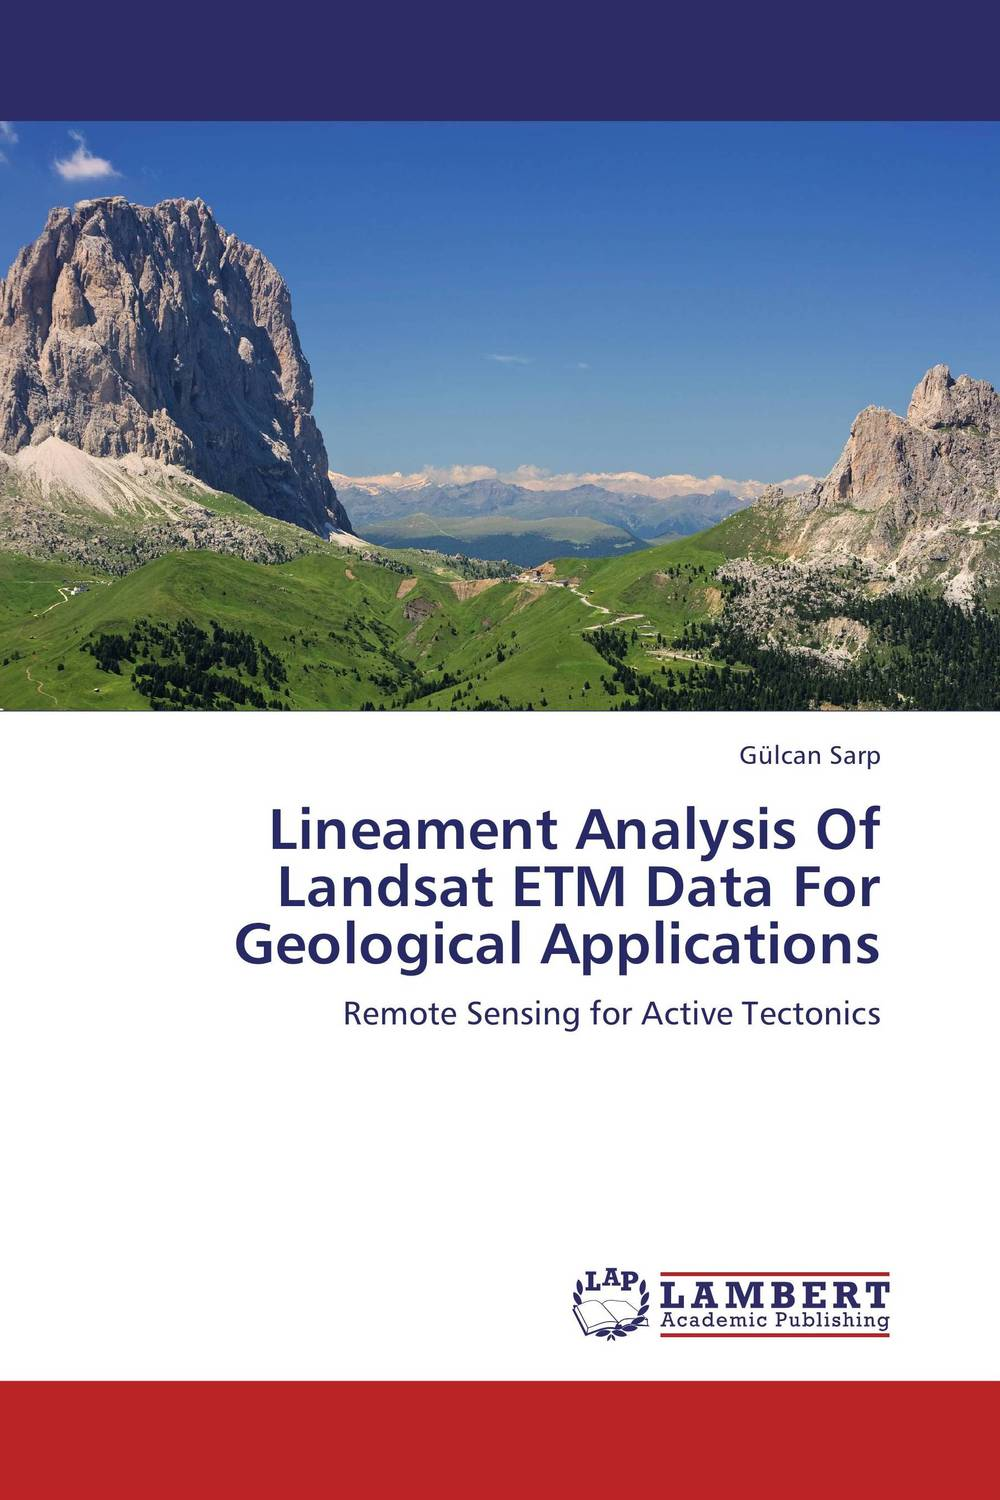 Lineament Analysis Of Landsat ETM Data For Geological Applications studies on ionospheric irregularities using remote sensing techniques